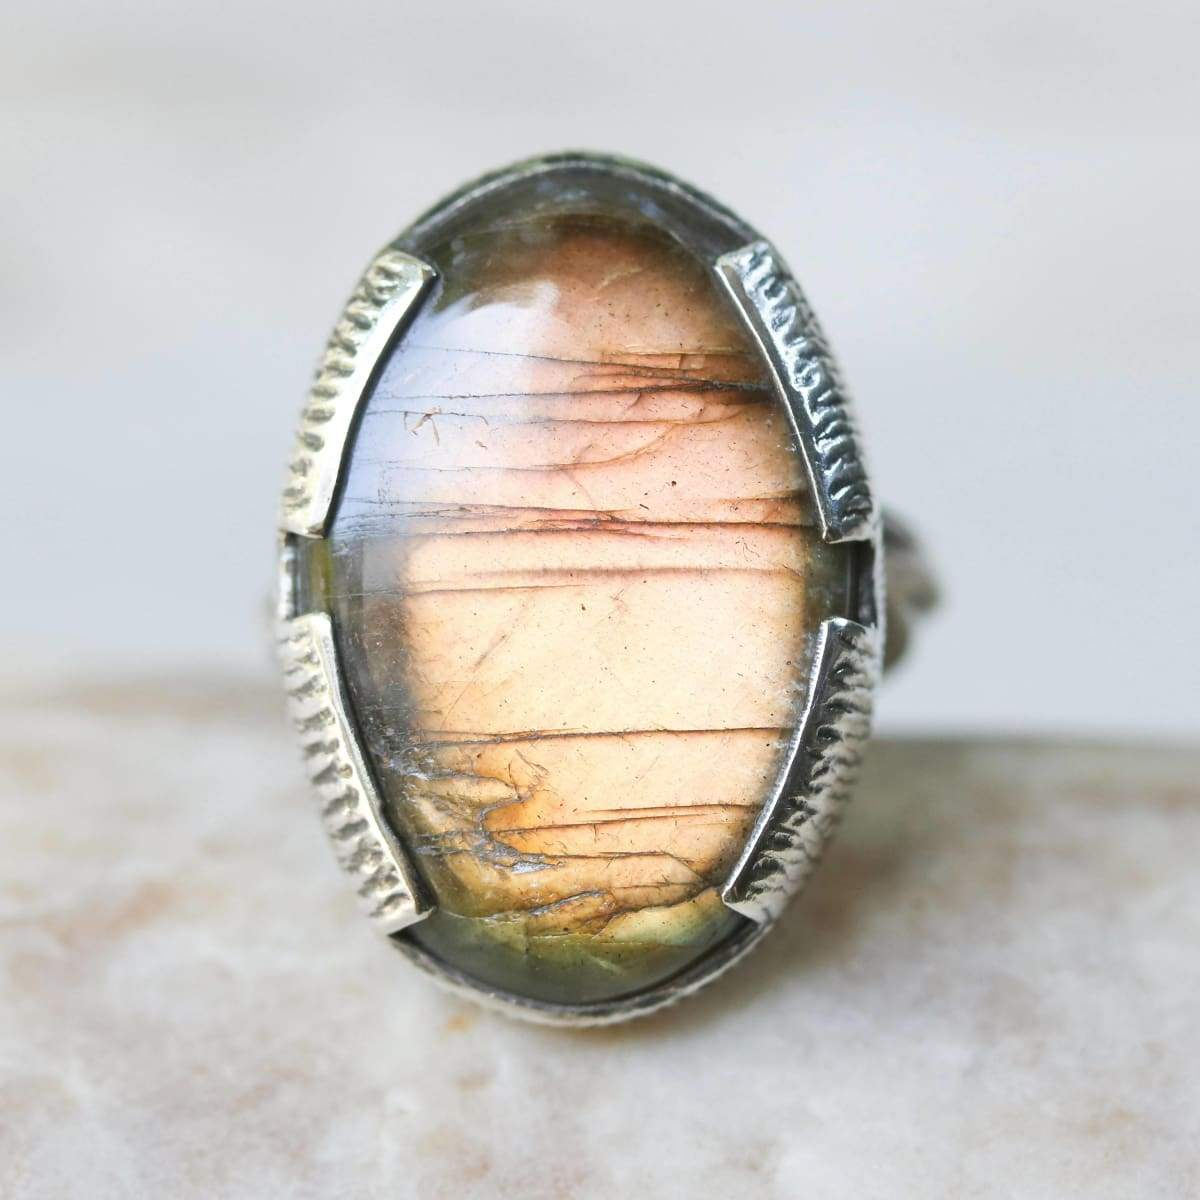 Rings Labradorite and silver cocktail ring with stunning oval labradorite cabochon gemstone